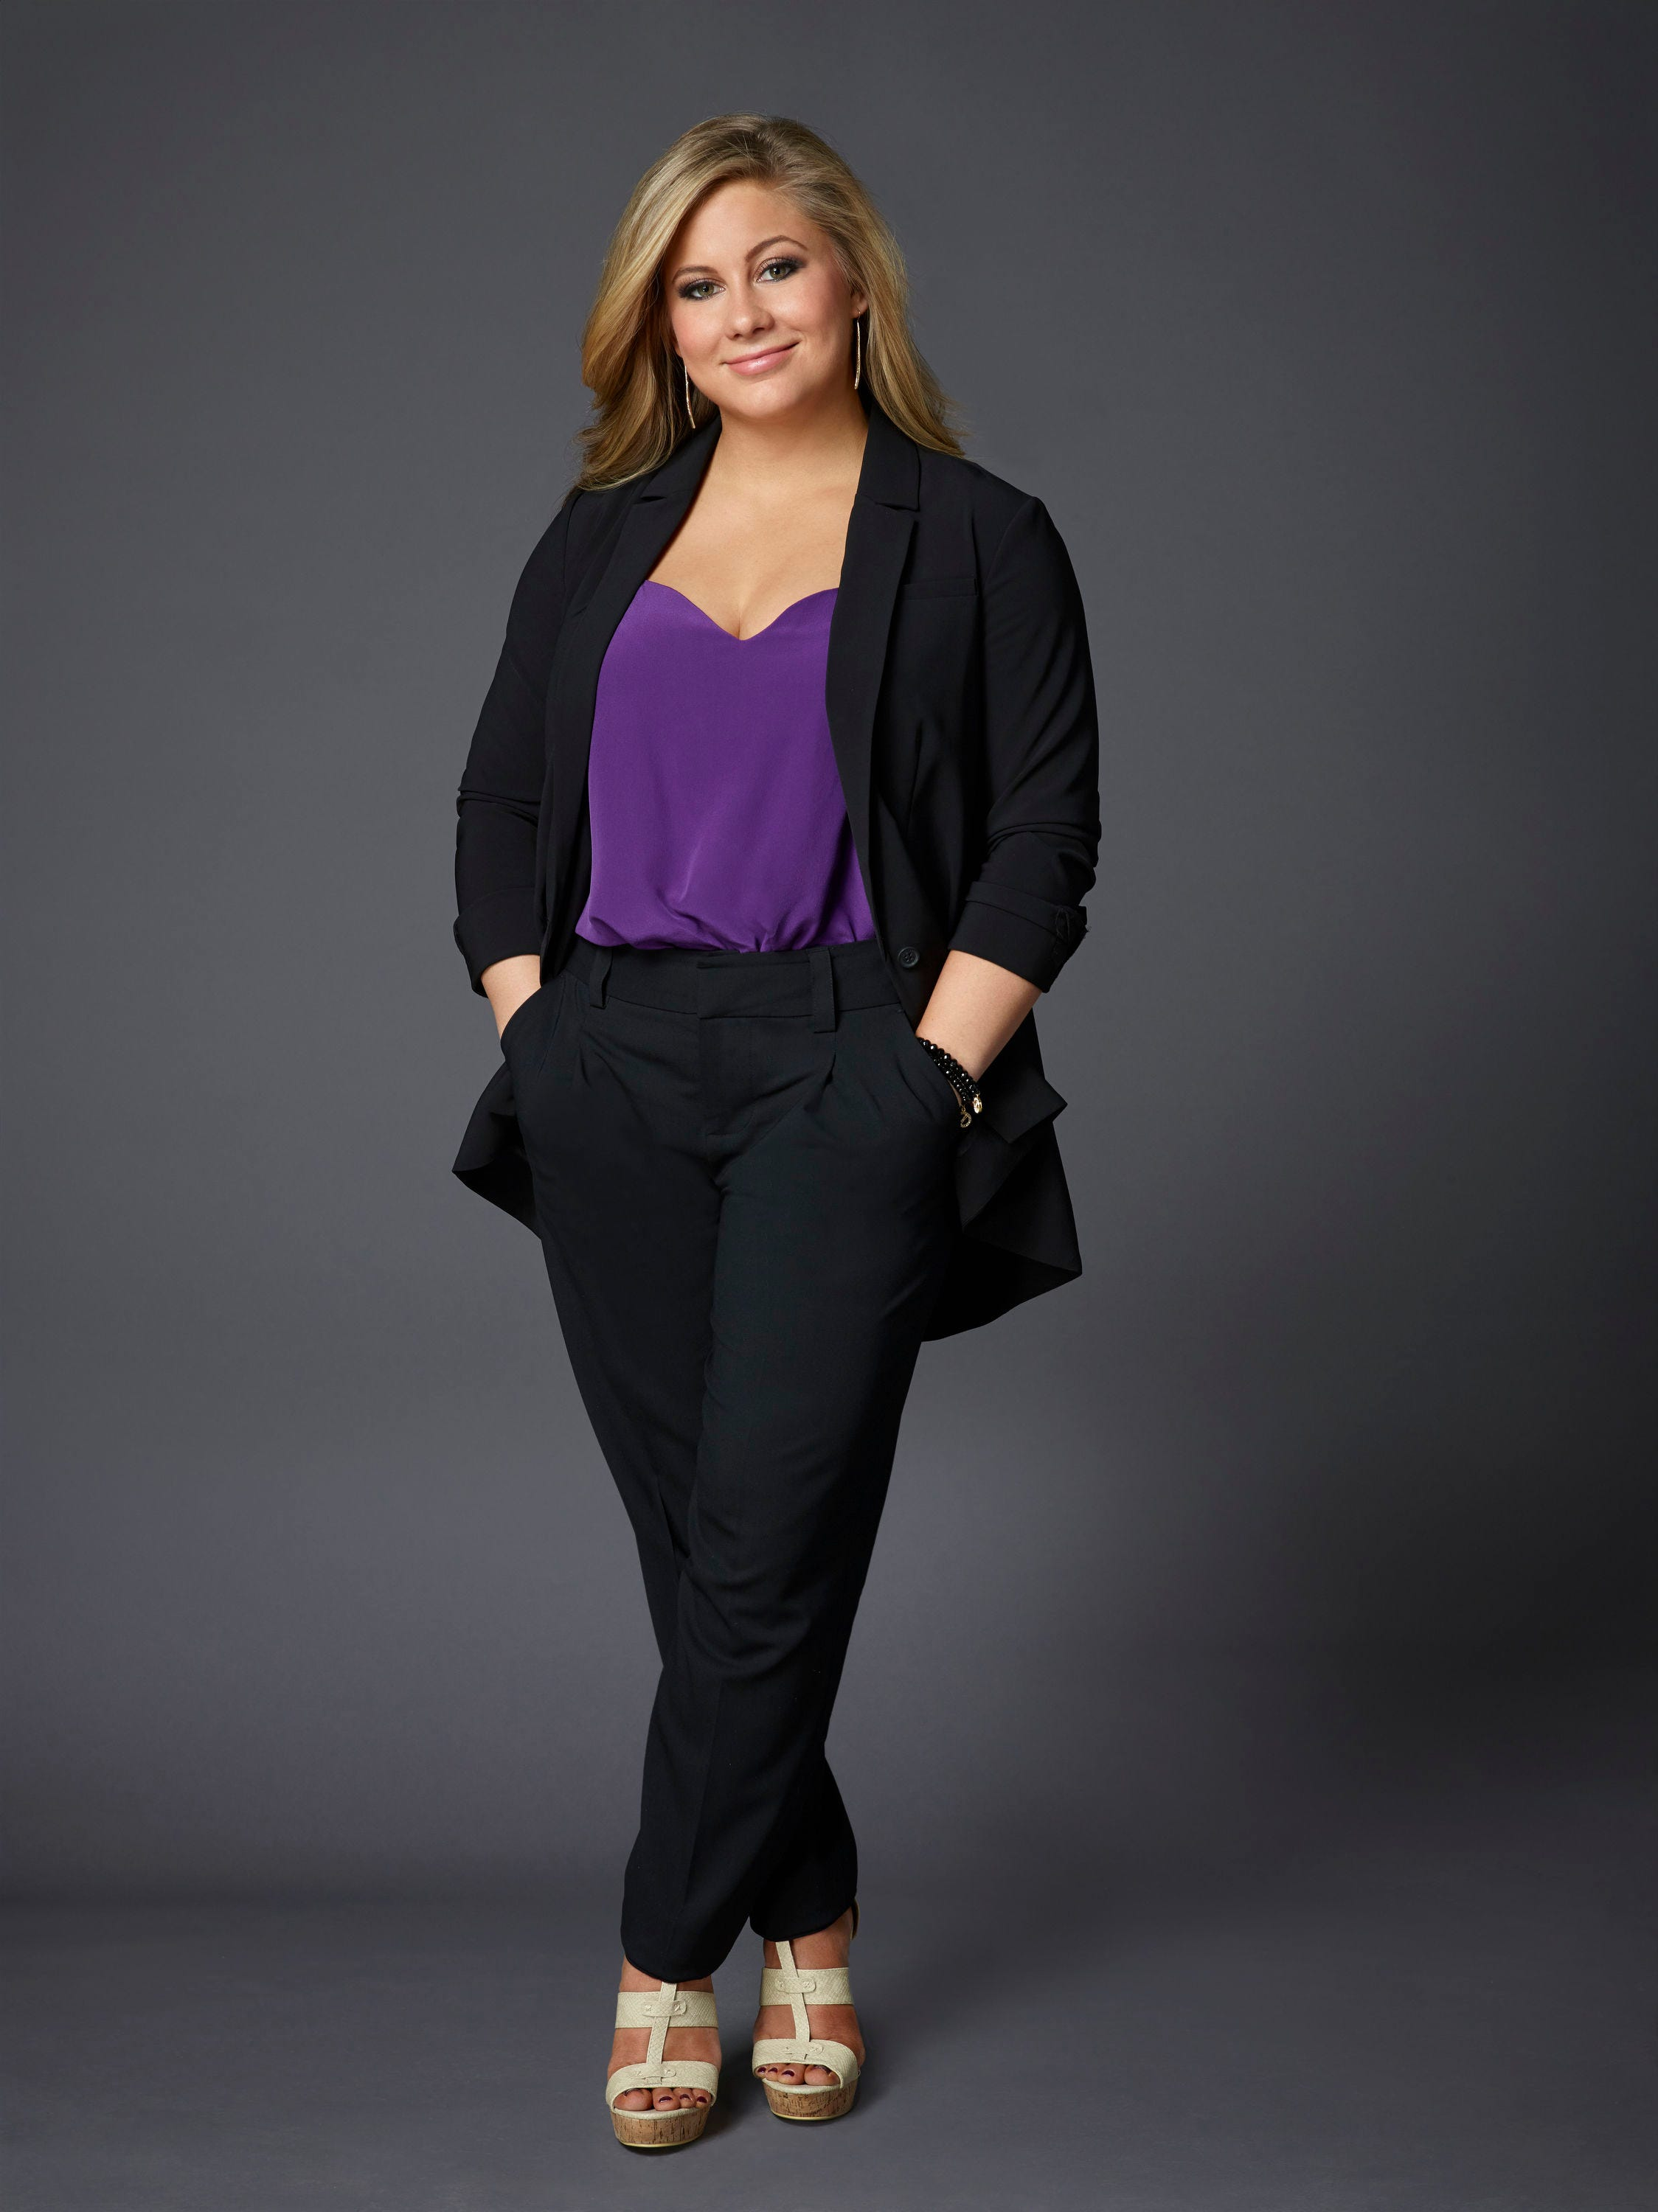 shawn johnson dancing with the stars